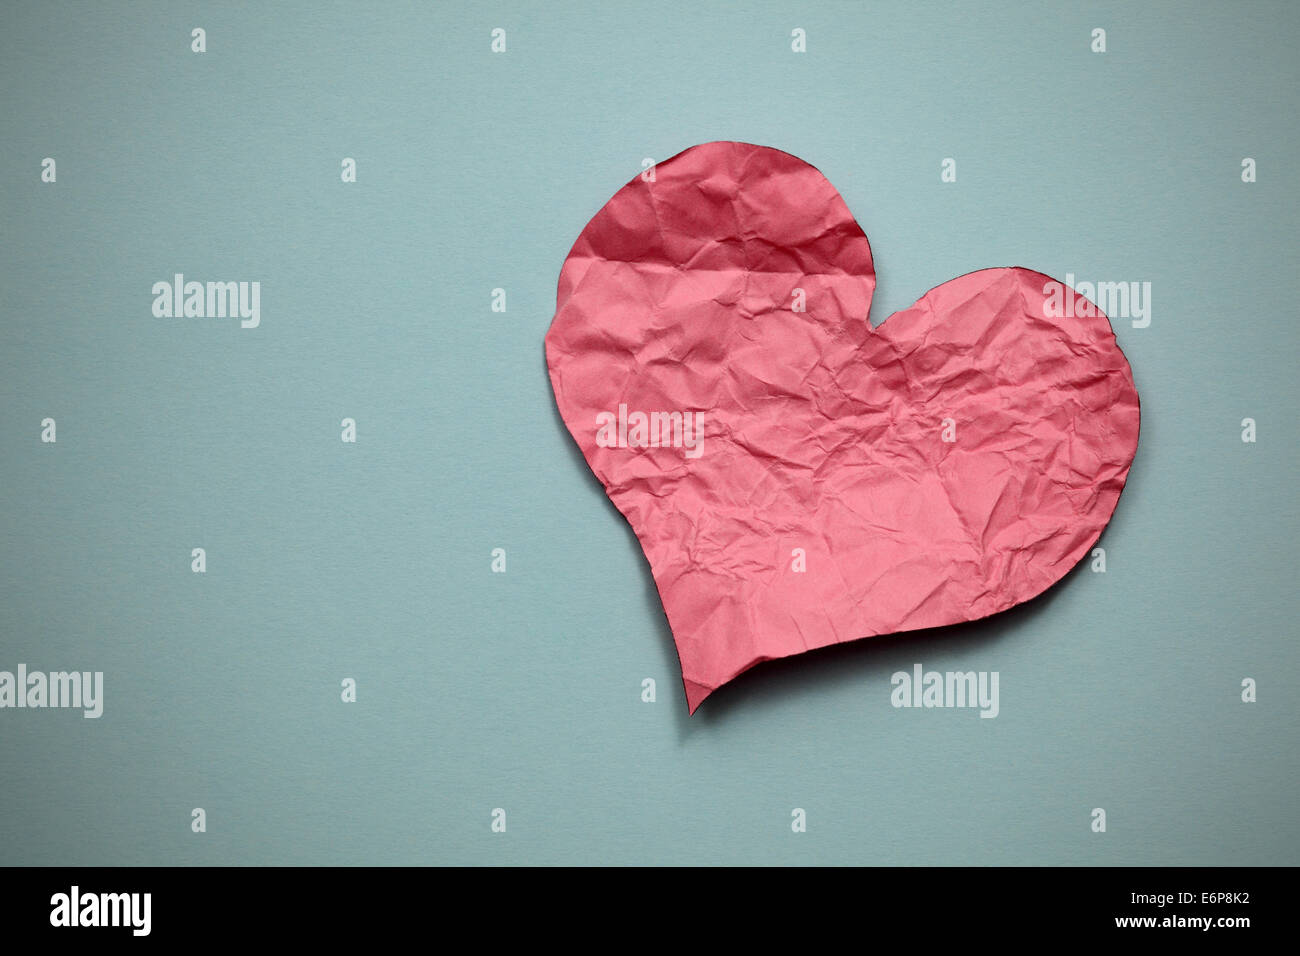 Heart Problems Stock Photos & Heart Problems Stock Images - Alamy